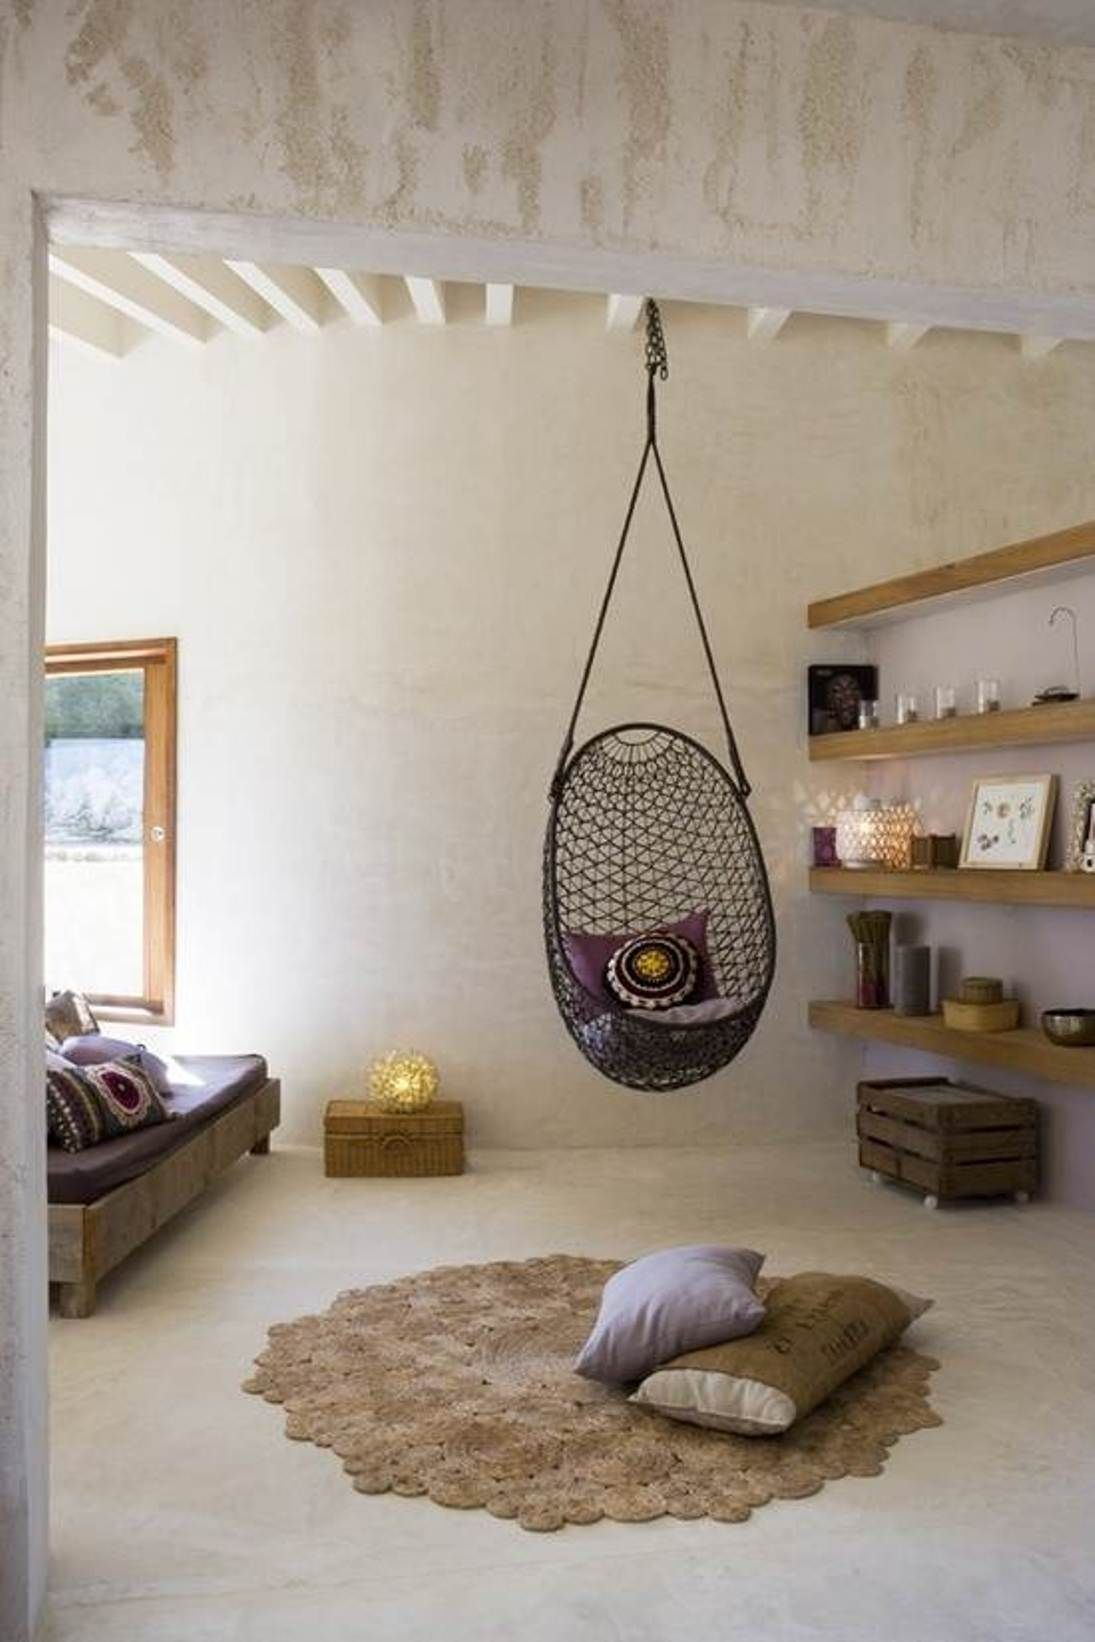 captivating grid rattan bedroom hanging chair design